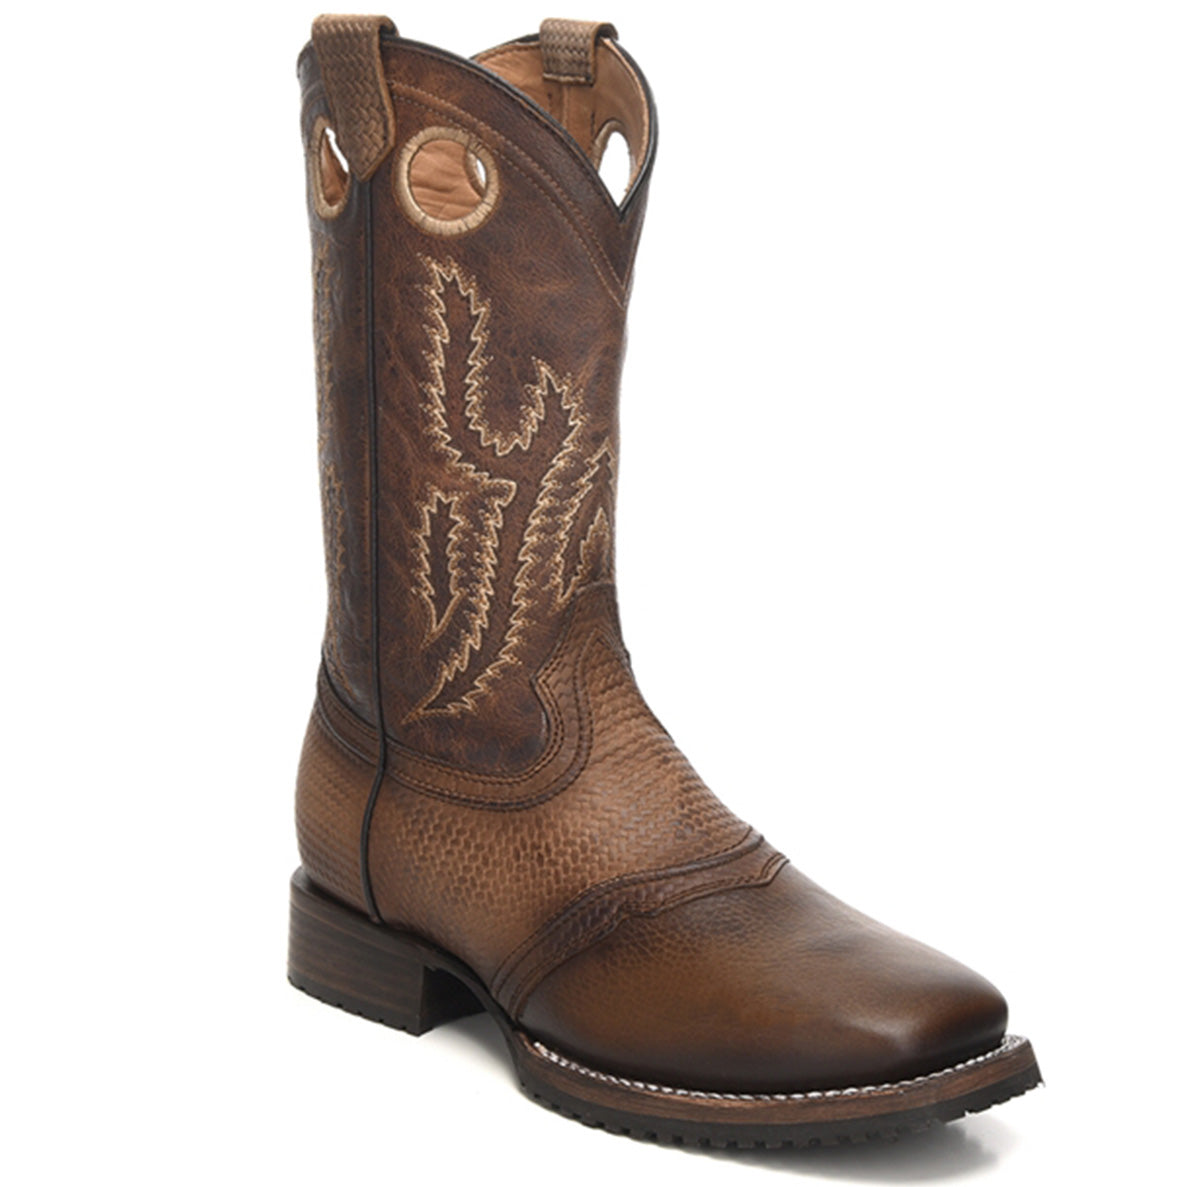 Cuadra Men's Volcano Brown Square Toe Boots